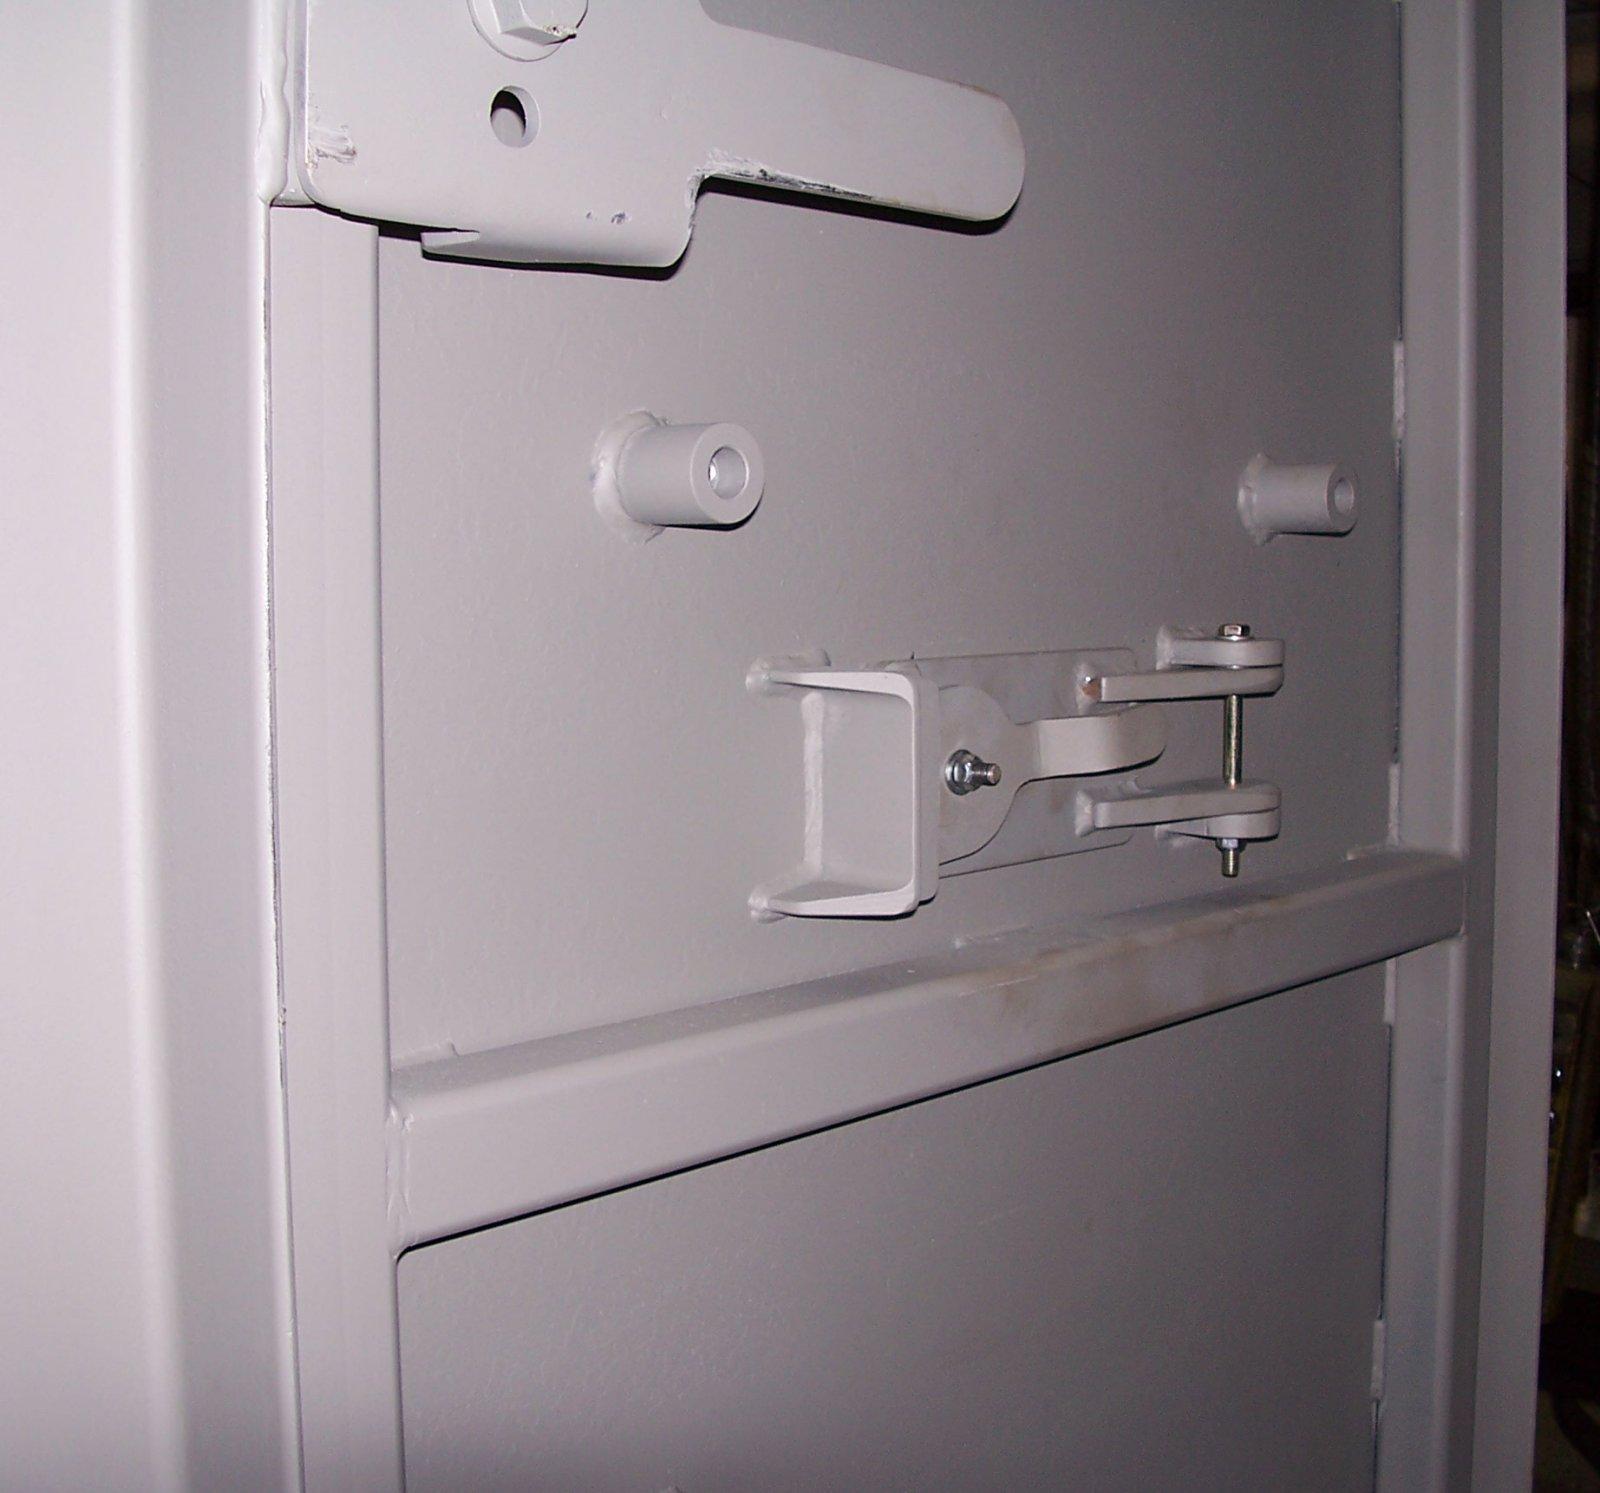 Latches on a ballistic door